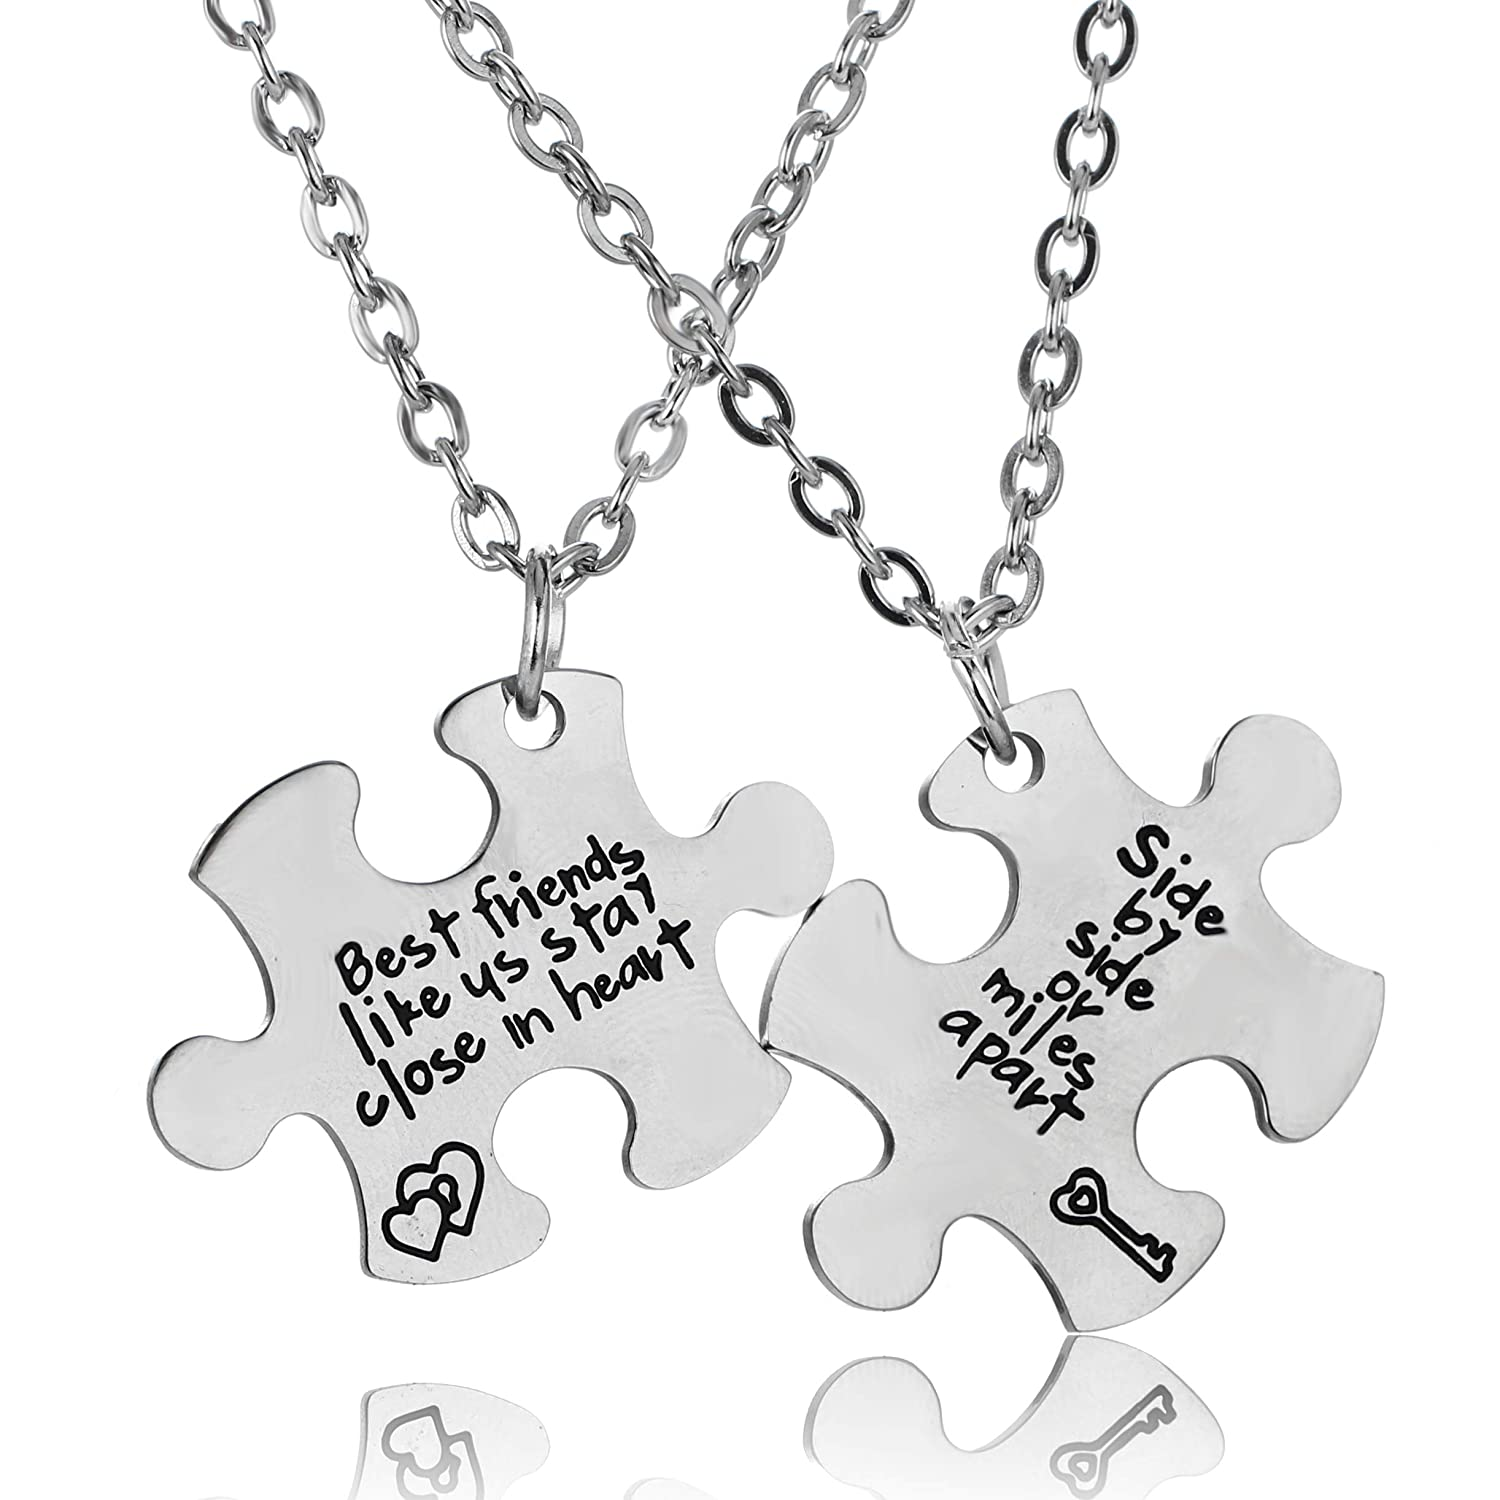 Best Friends Jewelry Gift for Sisters Necklace Set YeeQin 3PCS We Will Always Be Connected Keychain Set